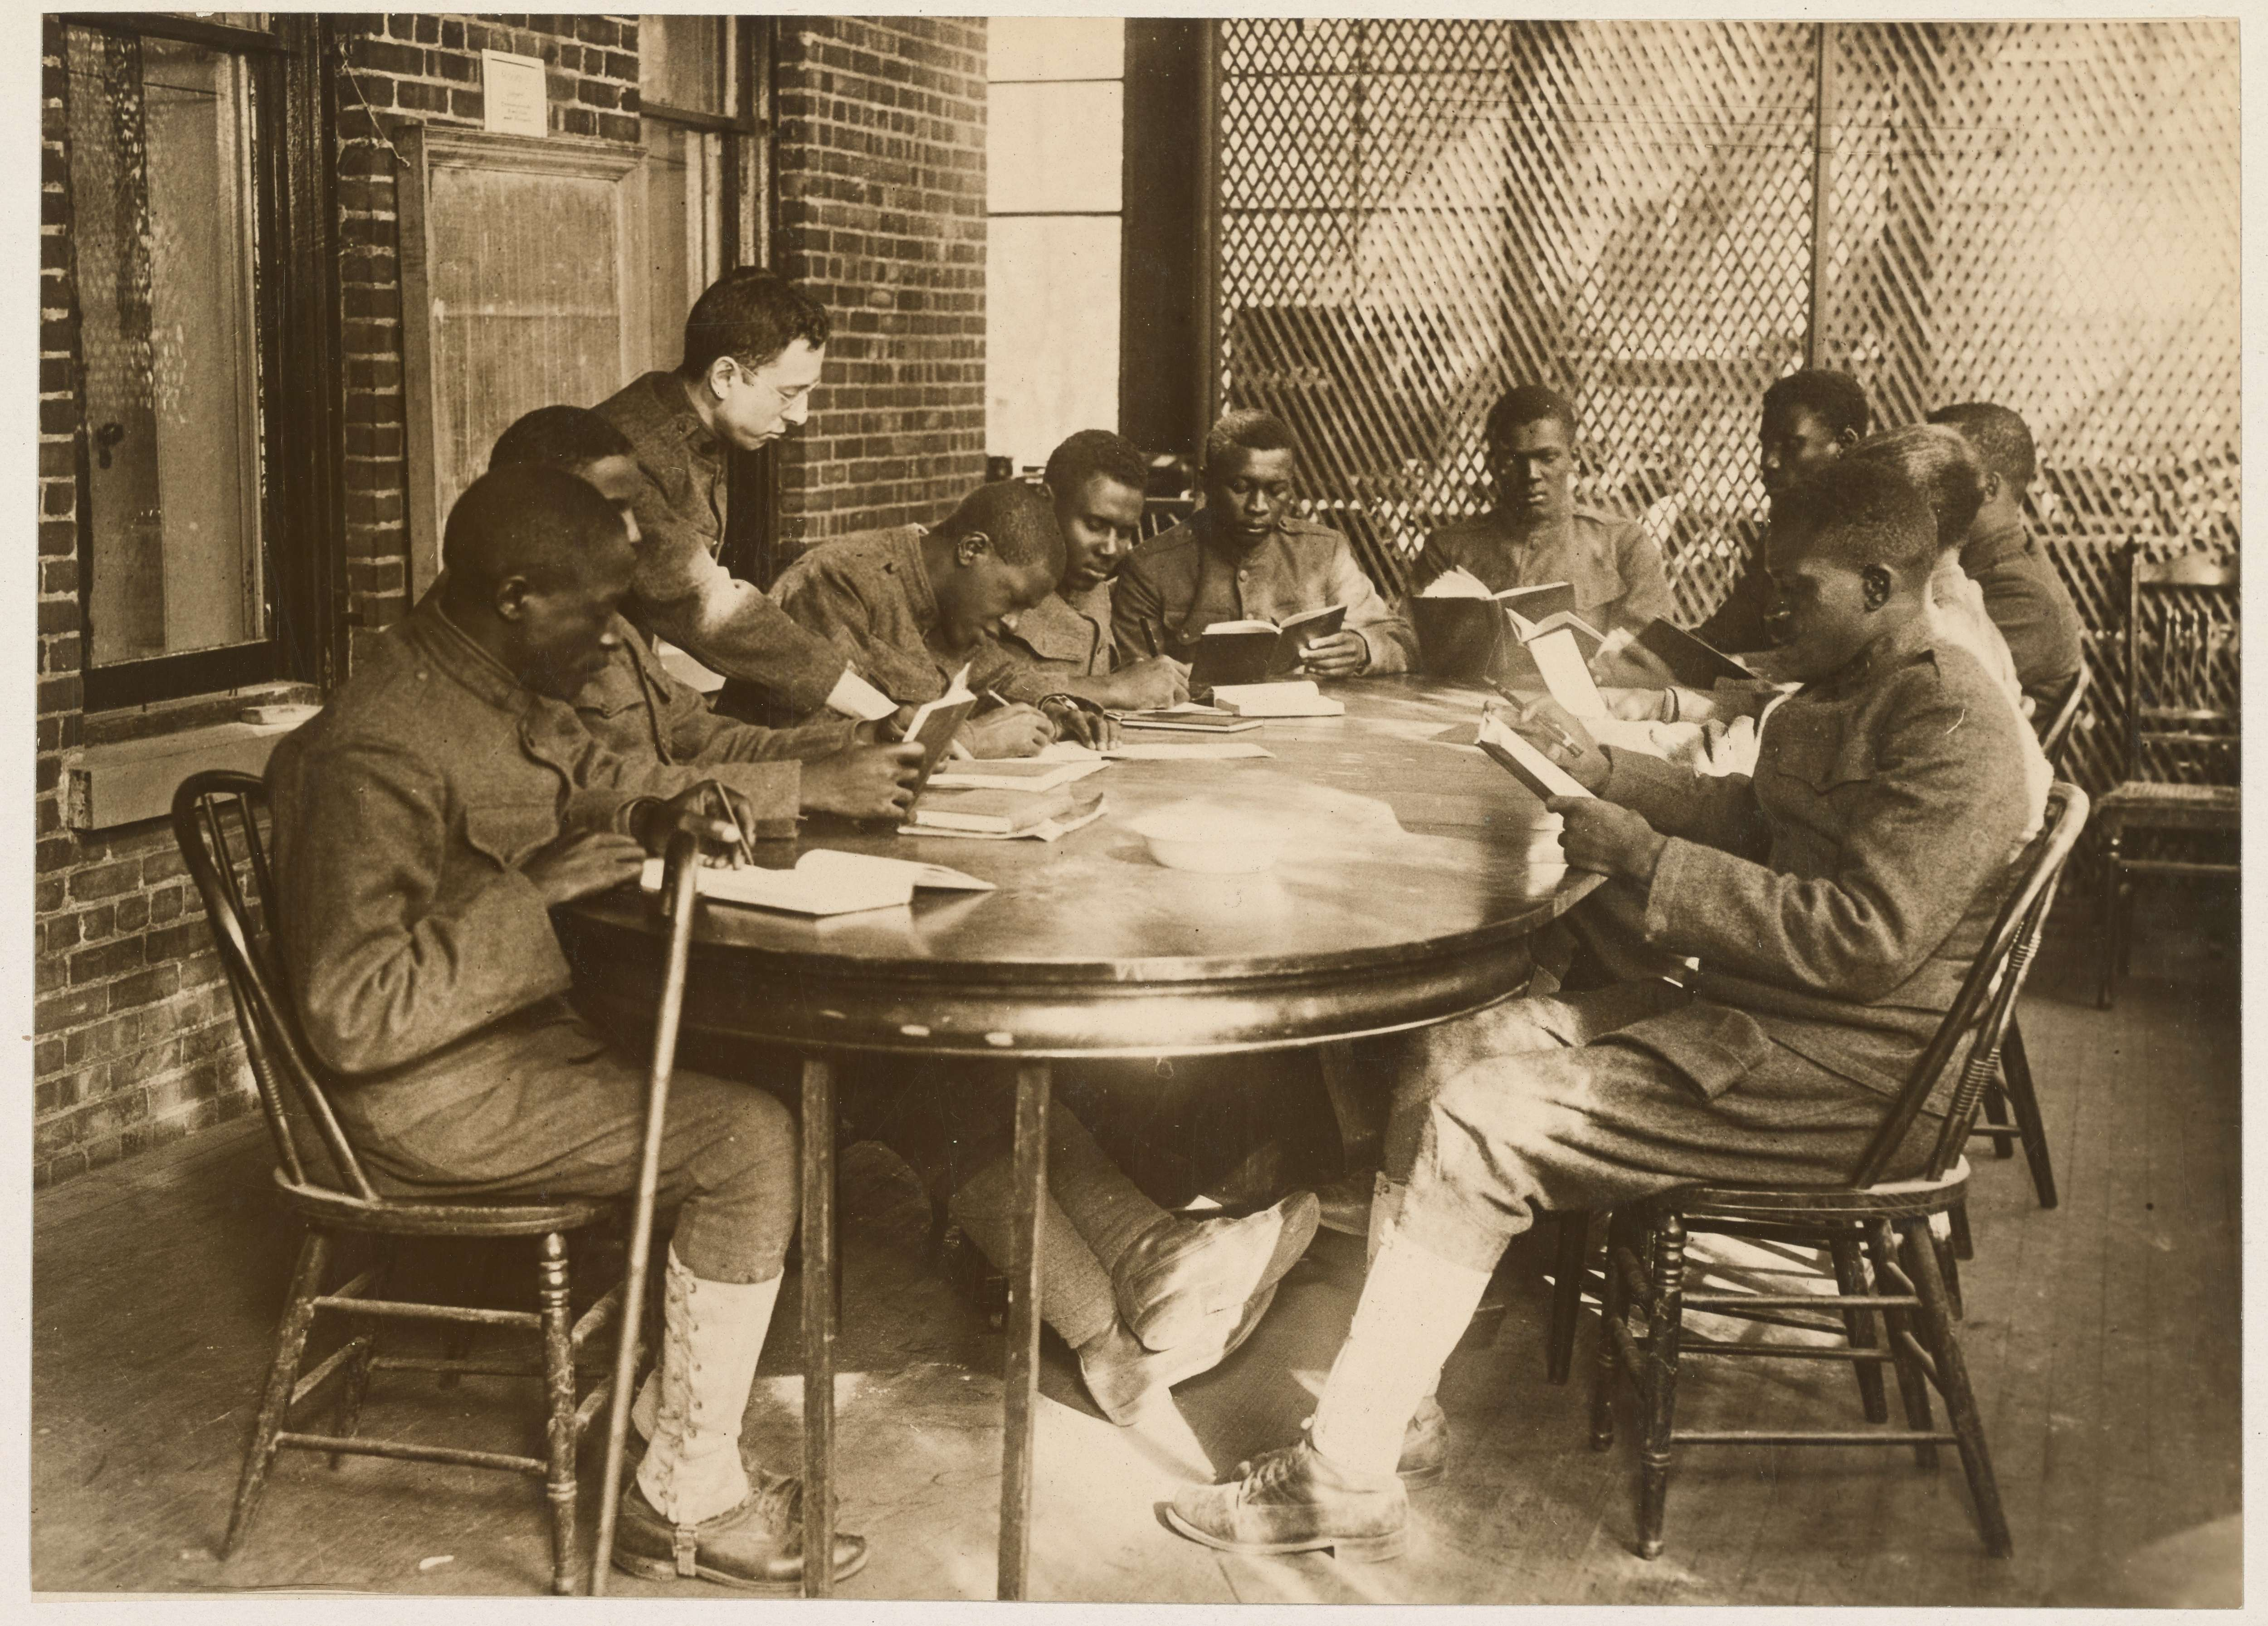 Medical Department - Restoration Work - Education and Rehab - United States General Hospital Number 9, Lakewood, New Jersey. Wounded American soldiers being taught how to read and write